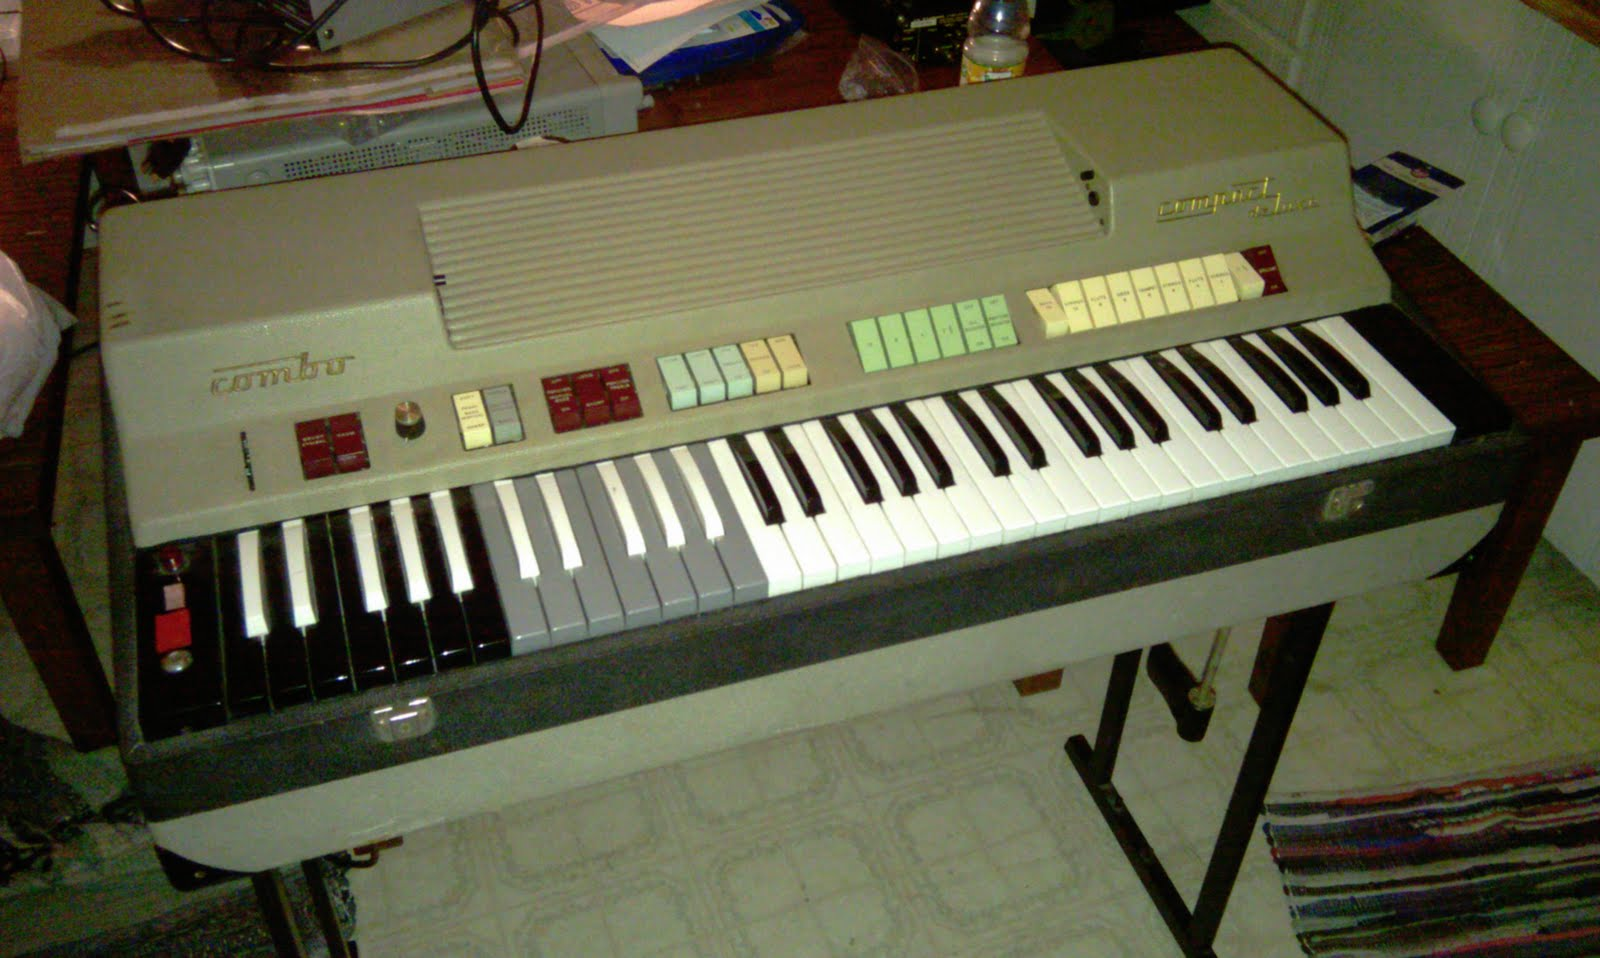 farfisa compact ou compact duo 384456 farfisa compact ou compact duo image ( 384456) audiofanzine farfisa wiring diagram at panicattacktreatment.co